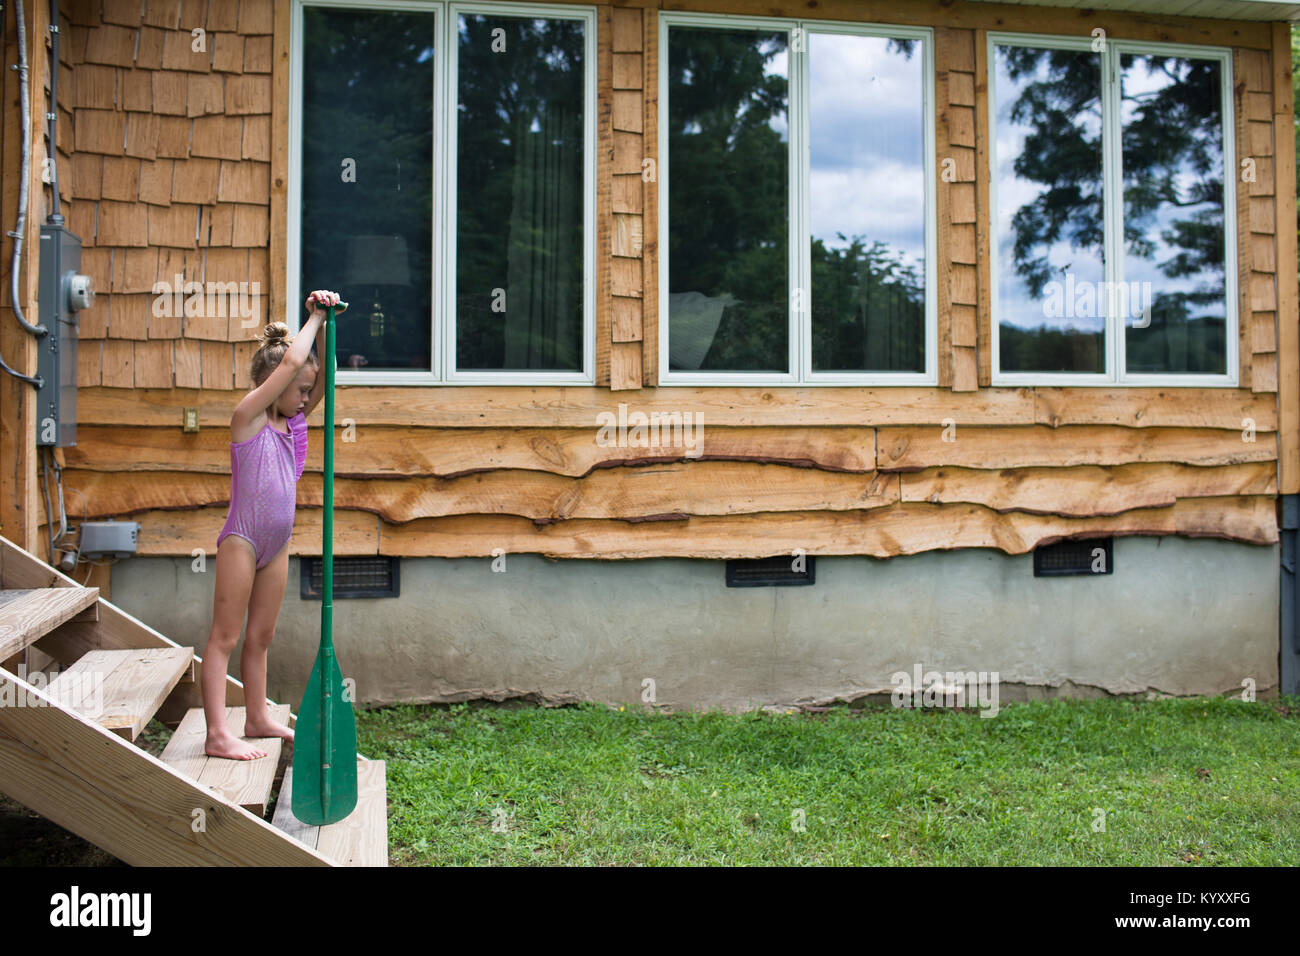 Girl wearing one piece swimsuit while holding oar on steps - Stock Image